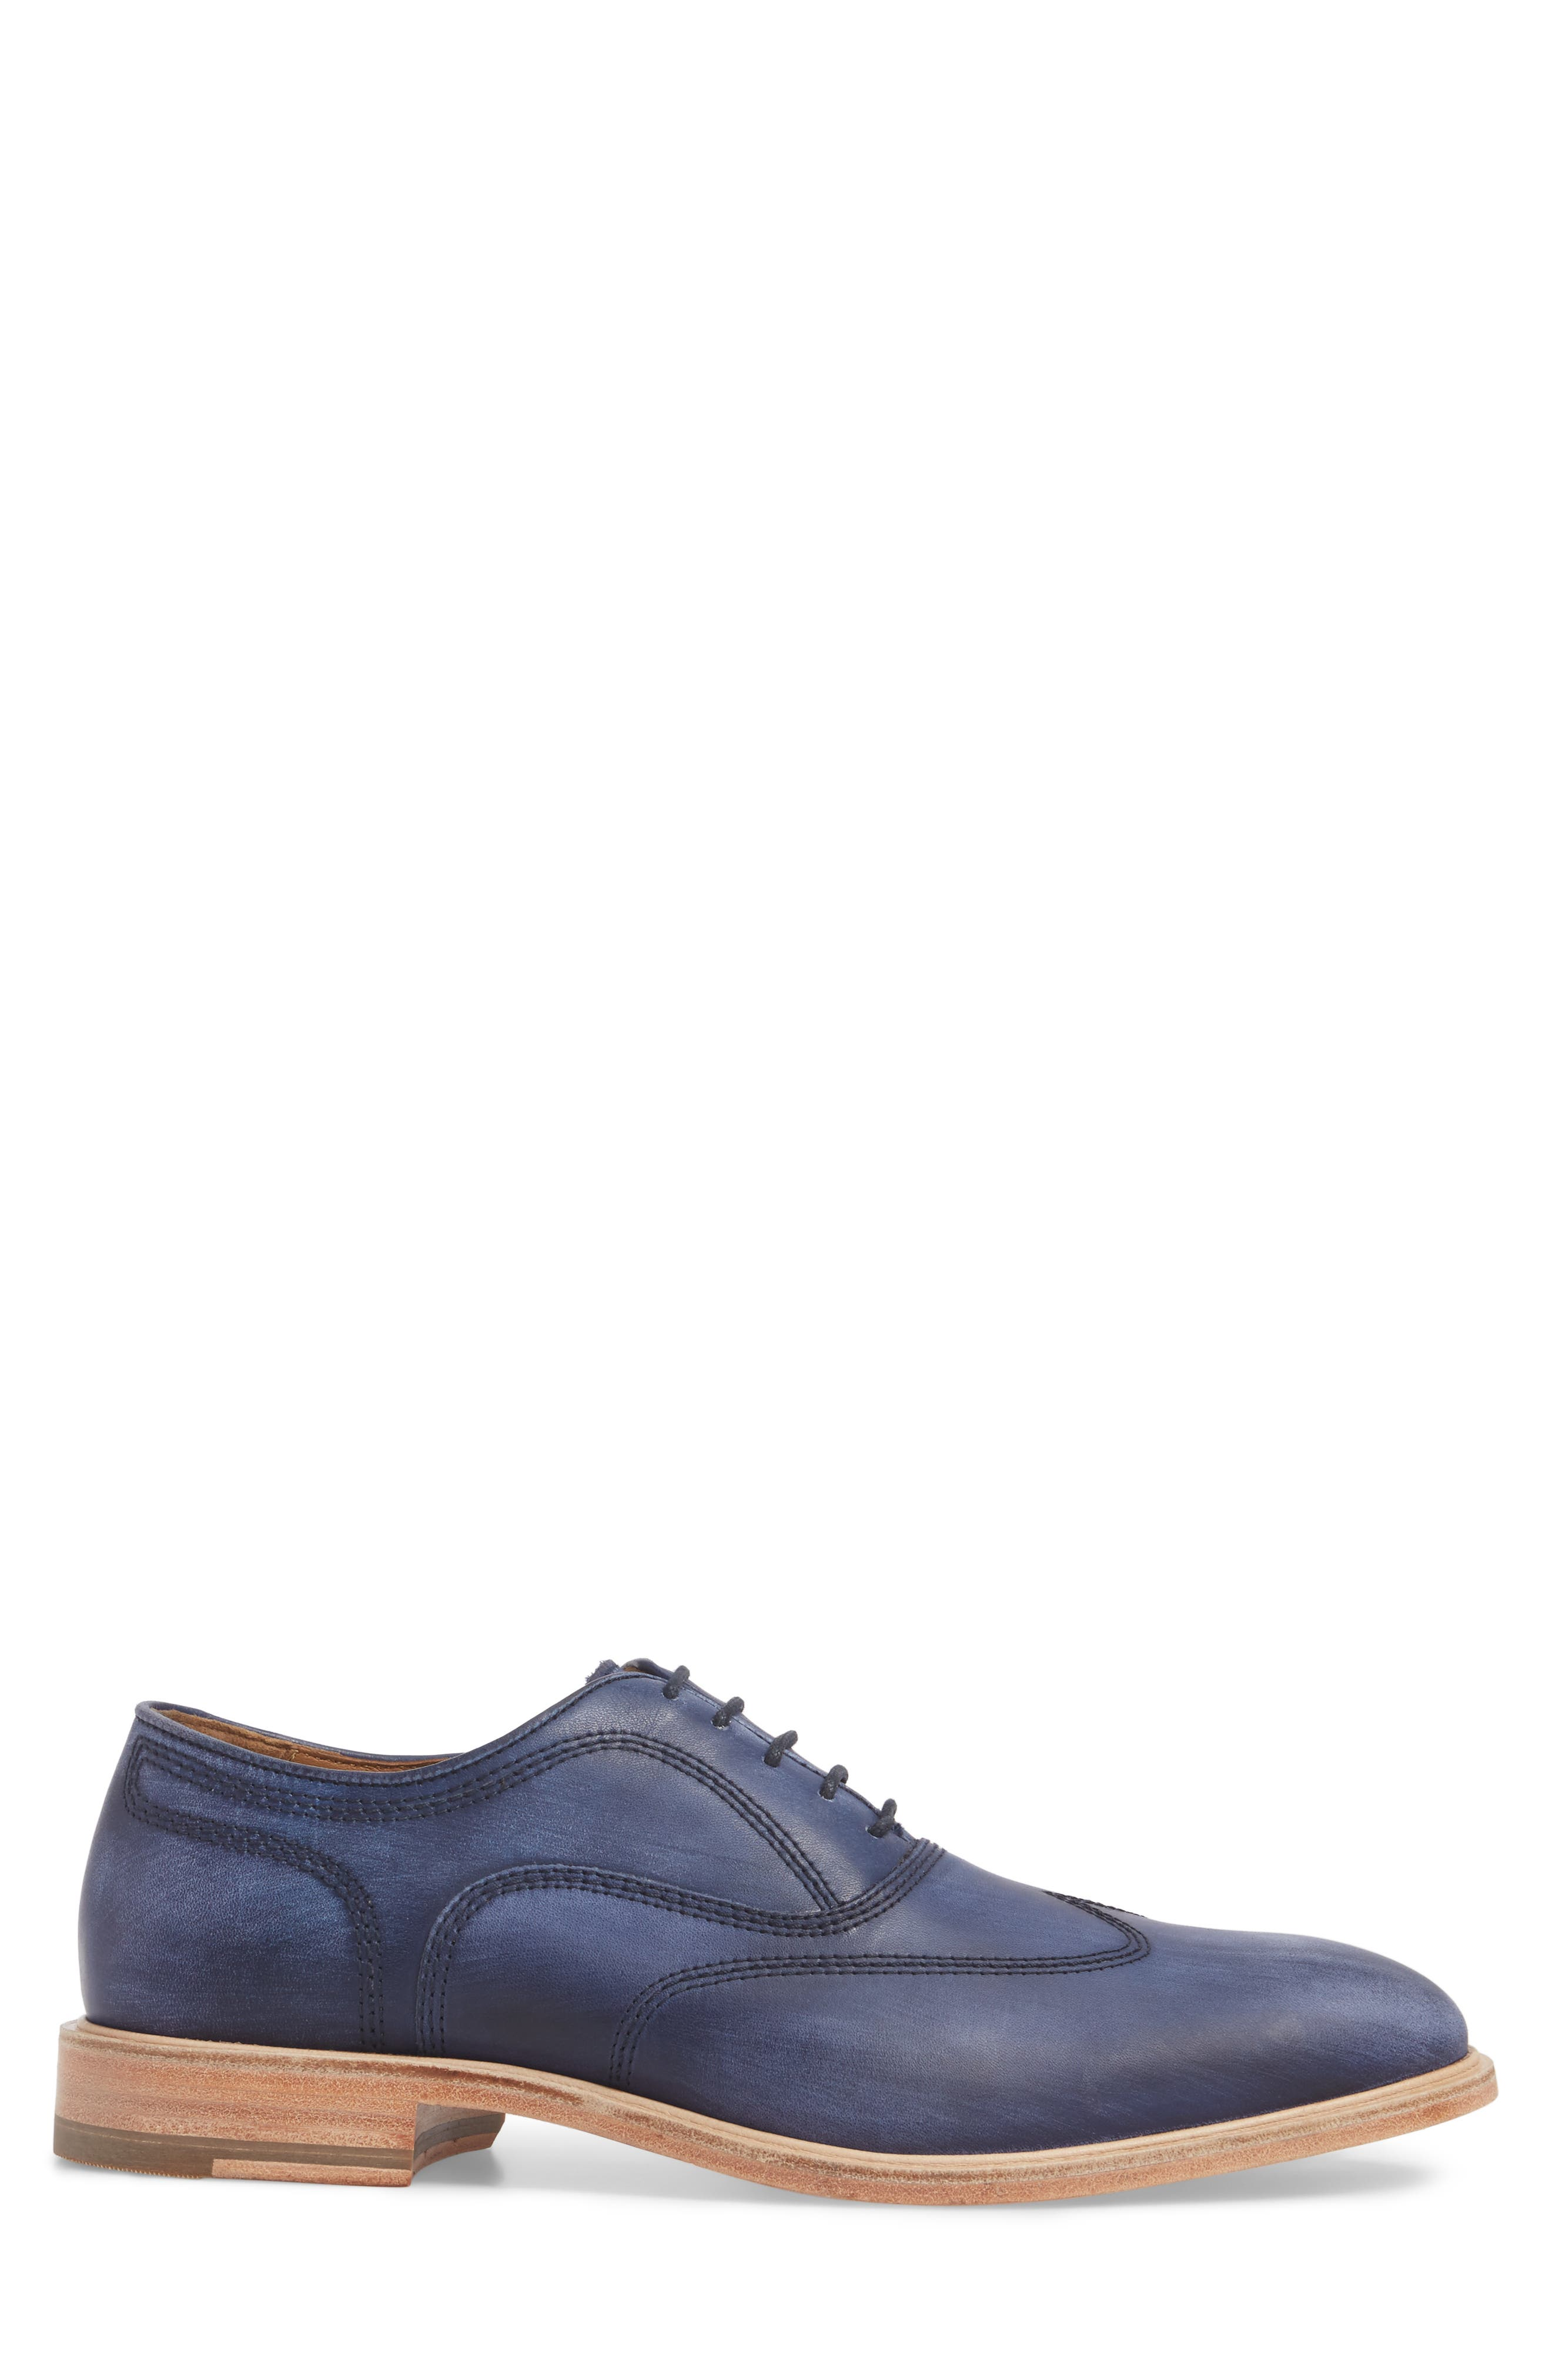 Chambliss Wingtip Oxford,                             Alternate thumbnail 3, color,                             Navy Leather